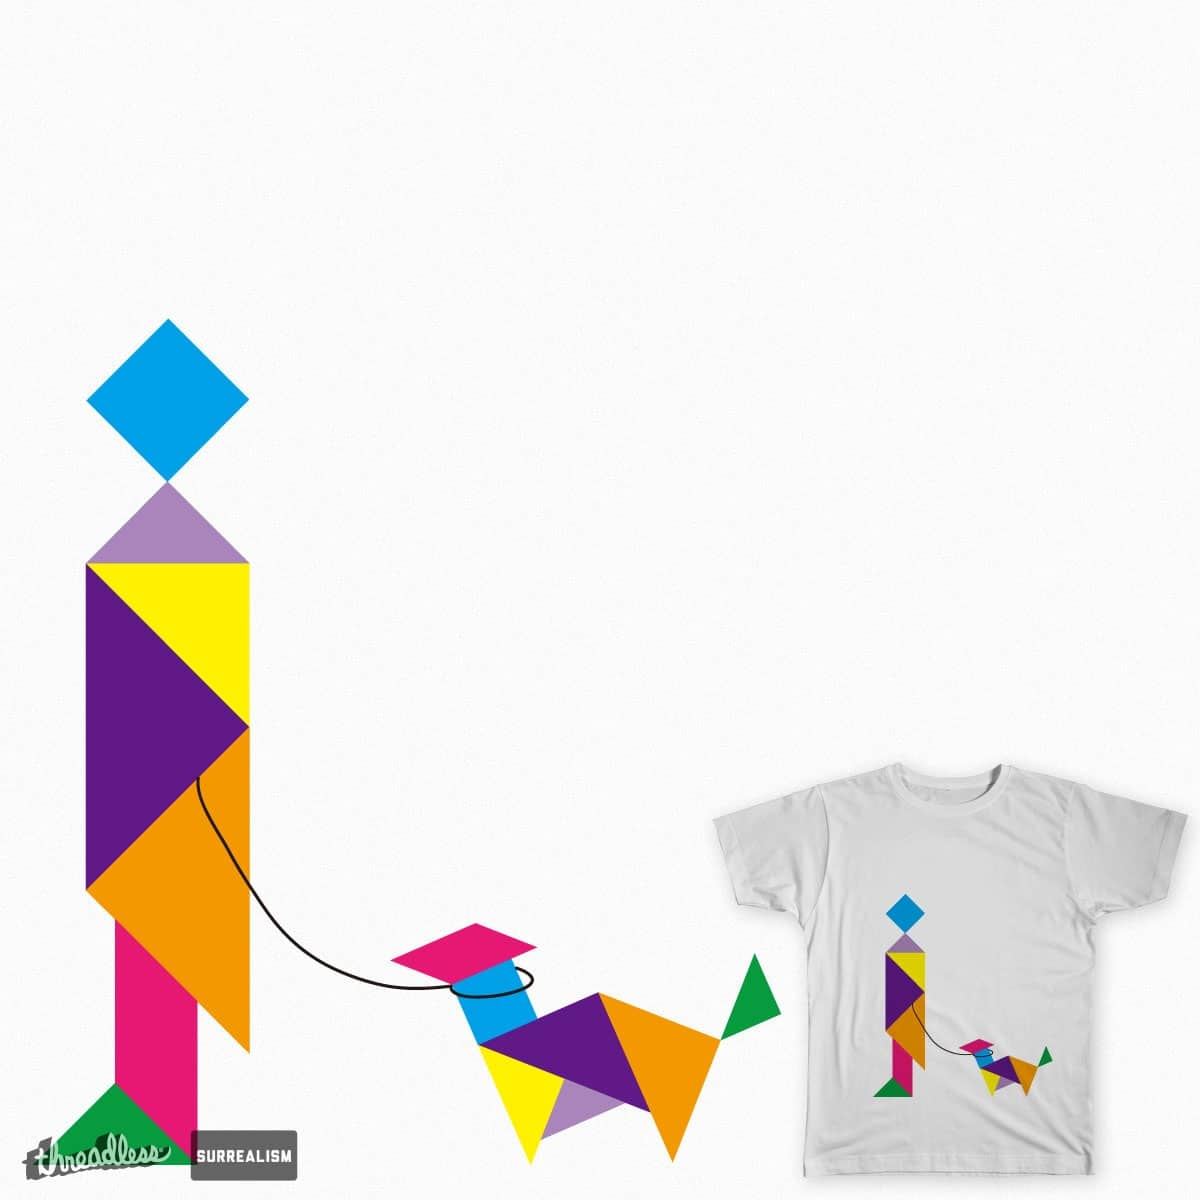 Tangram by hky082002 on Threadless